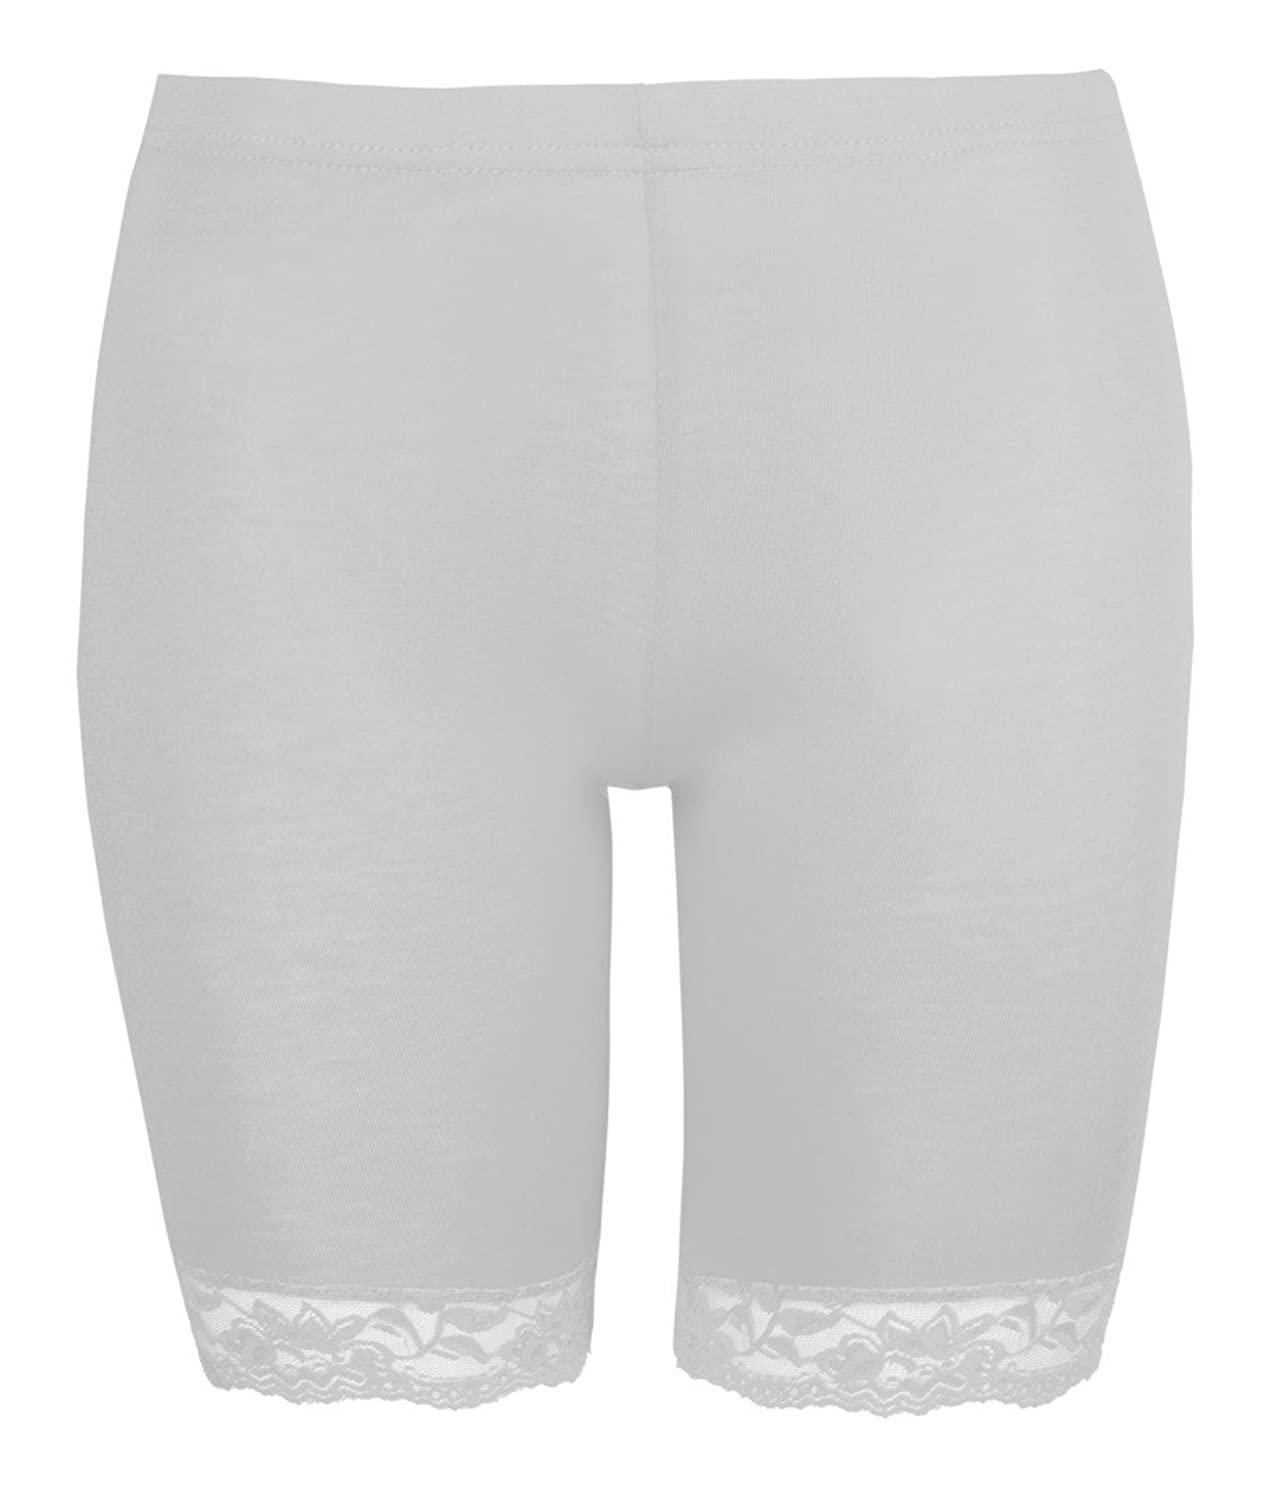 Womens Shorts Ladies Cycling Shorts By Love Lola® Lace Trim Cycle ...